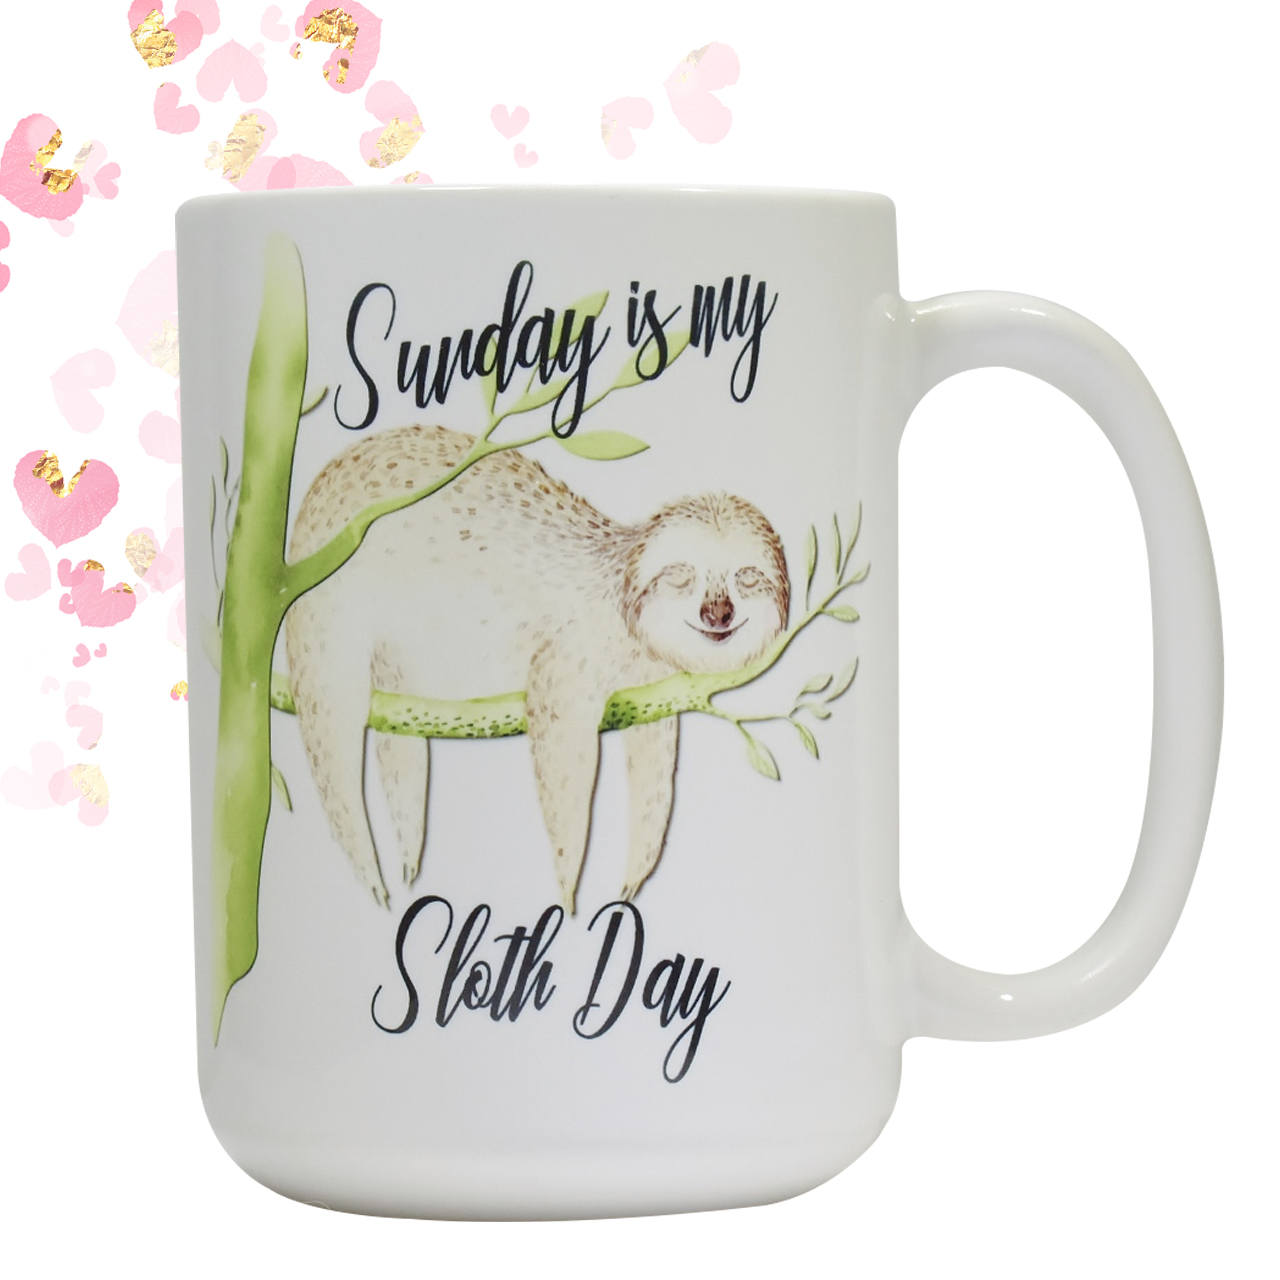 Sunday is my Sloth Day coffee mug | Friend Gift | Coworker Gift | Funny coffee Cup Gift | Sloth Gift | Gifts under 20 | Funny Handmade Gift